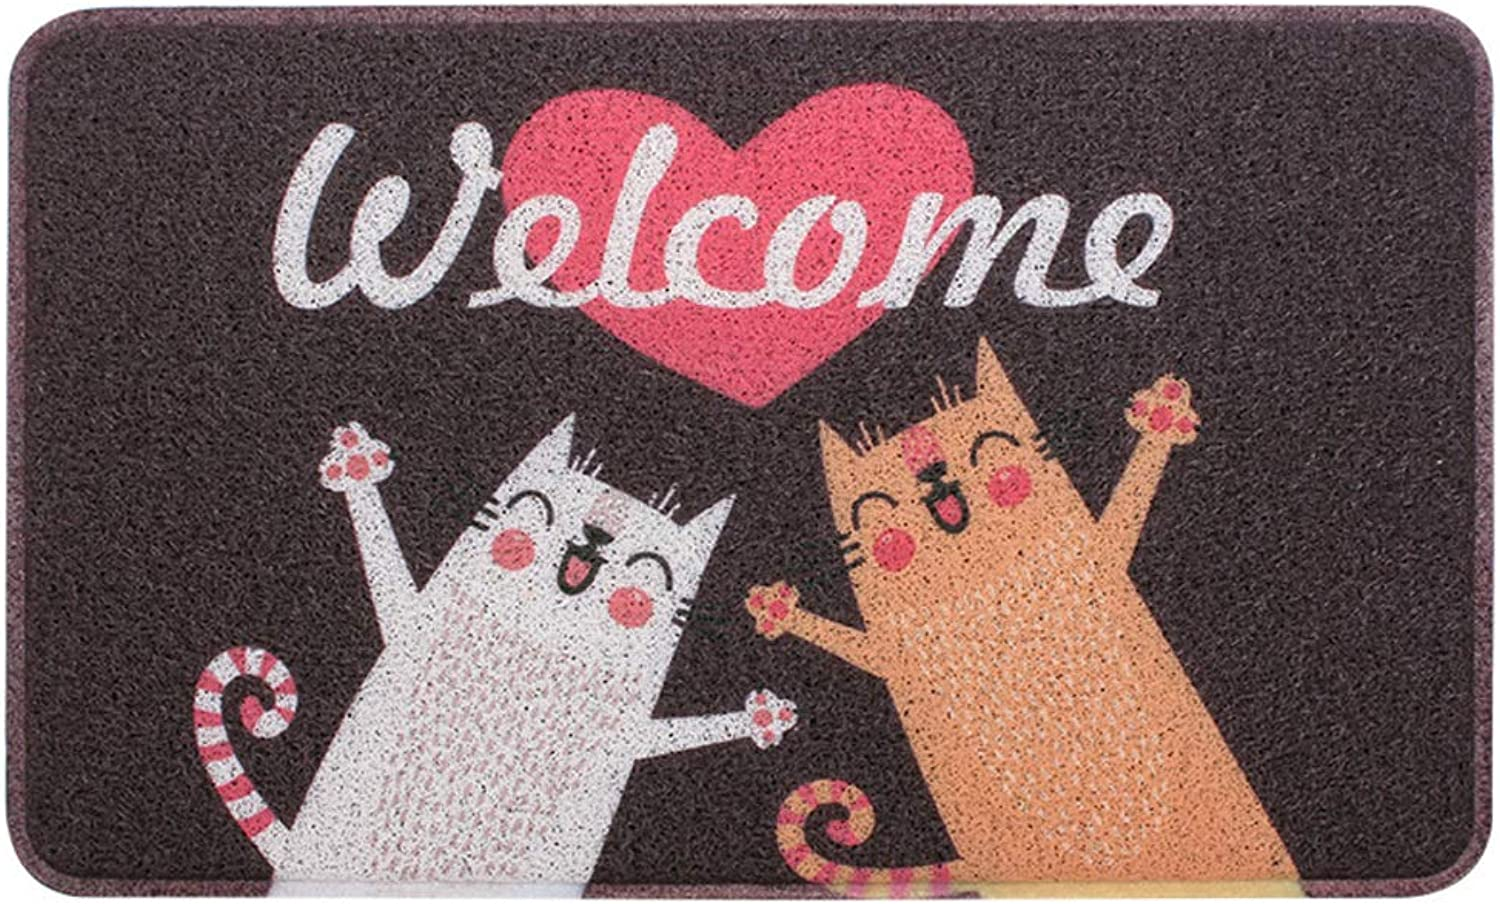 Door mat,Doormats Entrance Rug Bathroom Non Slip Door mat Front Entrance Door mat Front Door mat-Welcome 45x75cm(18x30inch)